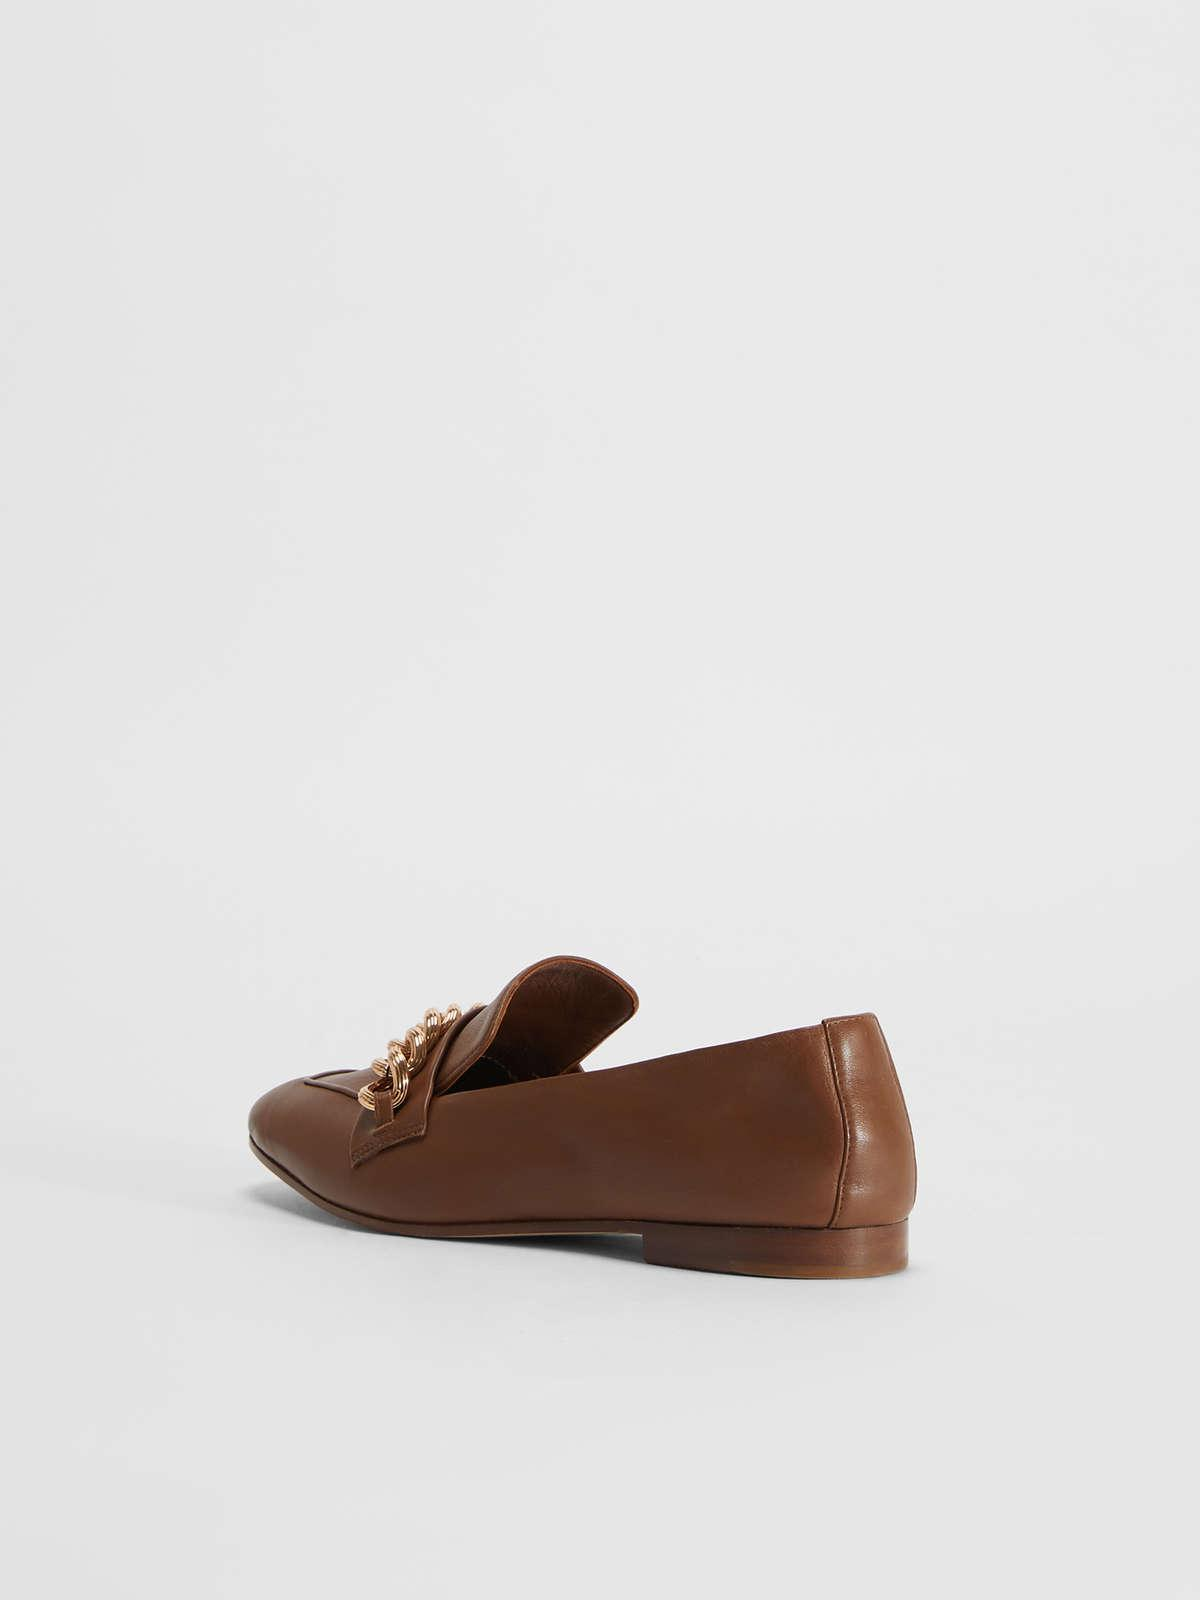 Womens Max Mara Flat Shoes   Nappa Leather Loafers Tobacco